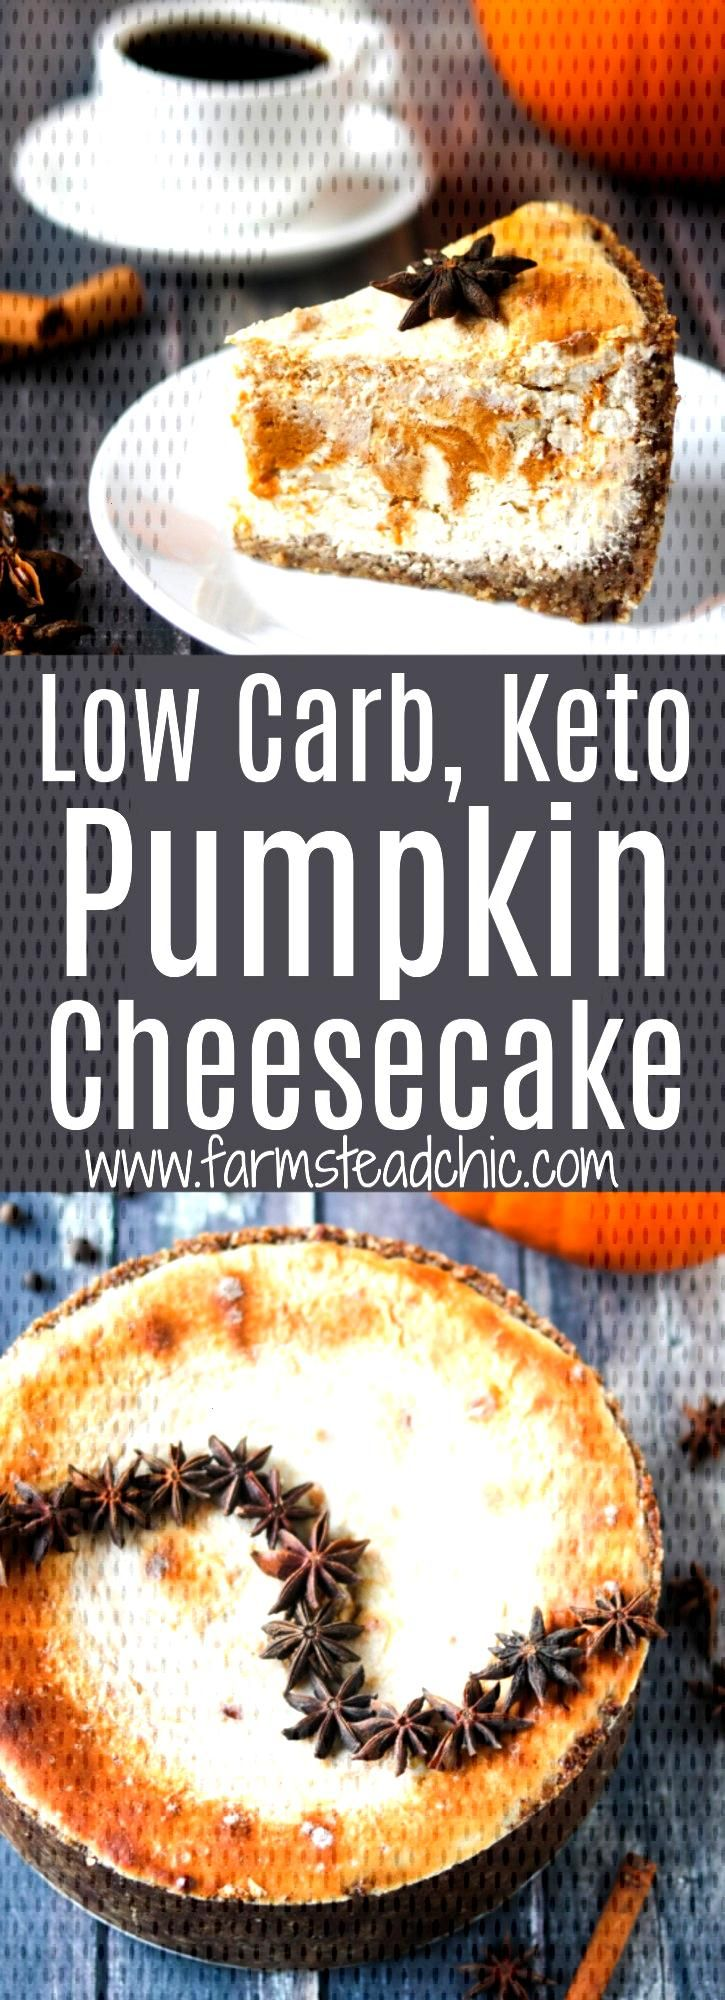 Keto Pumpkin Cheesecake, Low Carb, No Added Sugar -